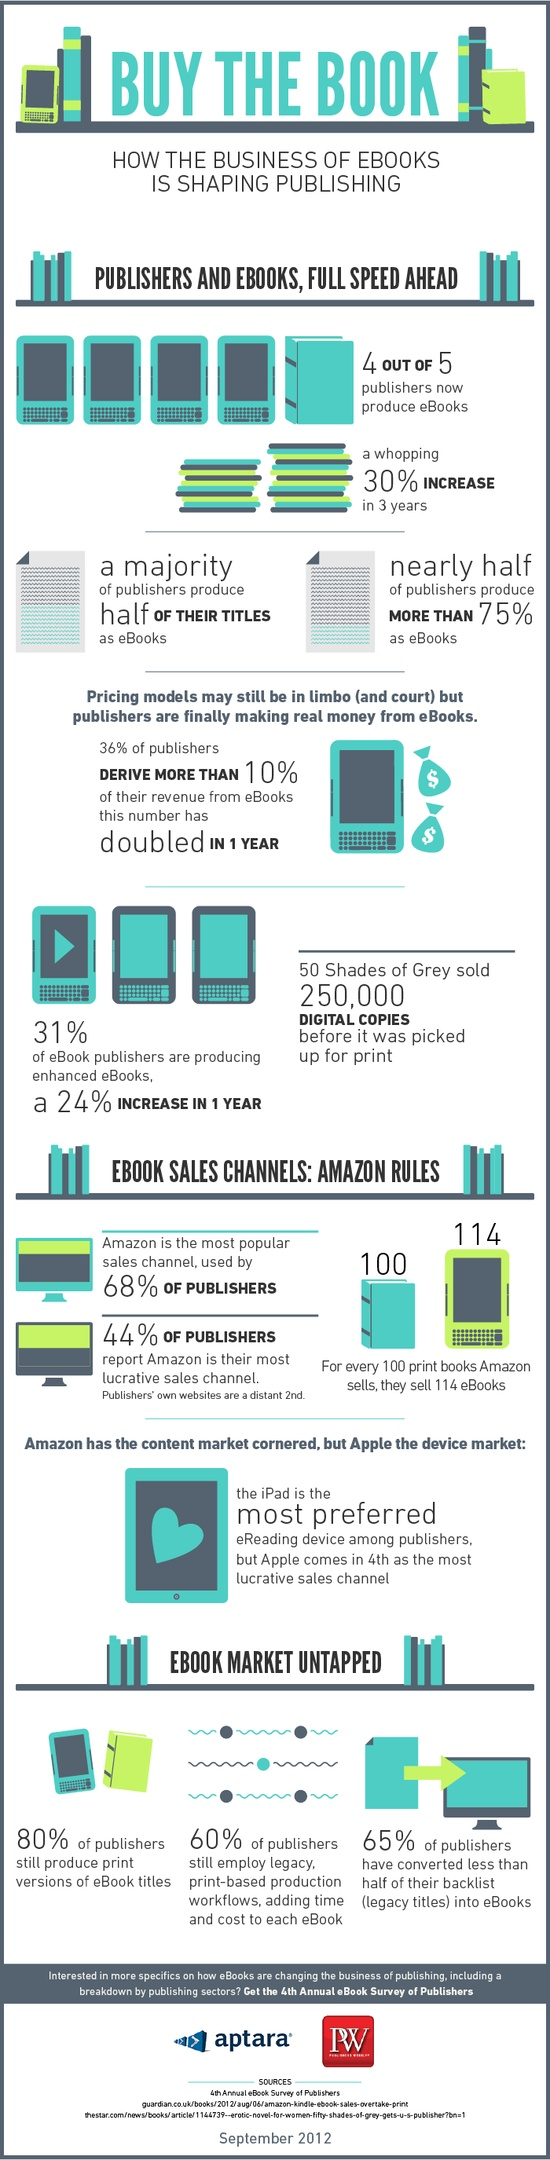 How the business of eBooks is shaping publishing